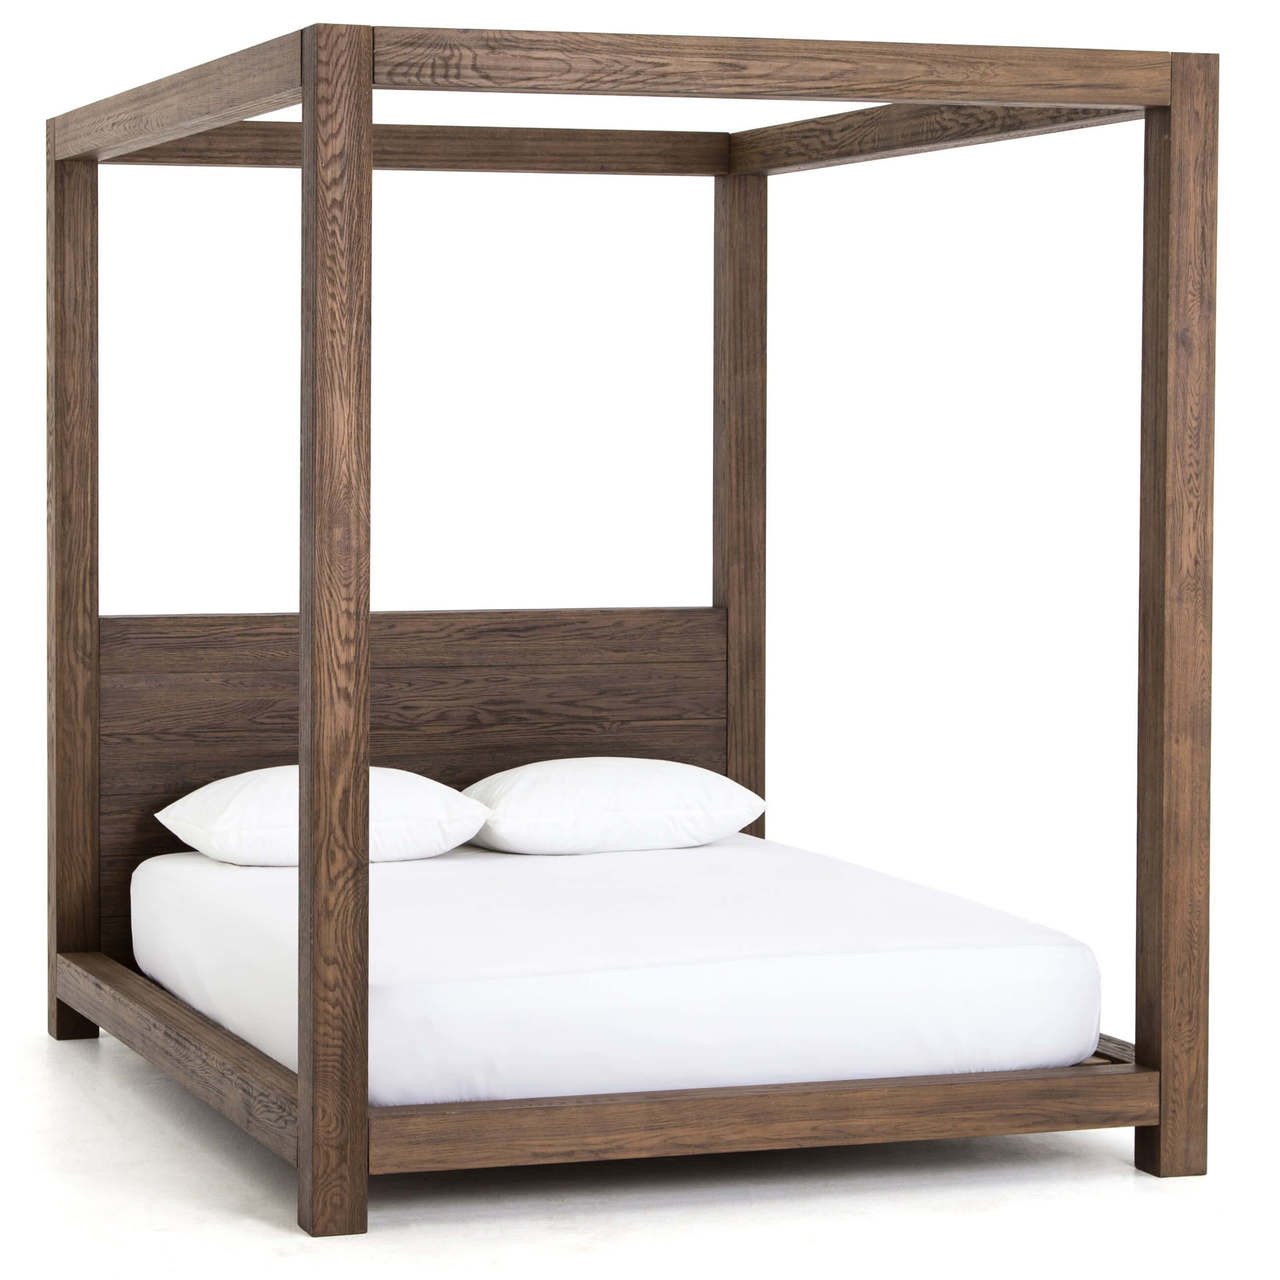 Williams Wood Platform Queen Canopy Bed Frame - Grey | Zin Home